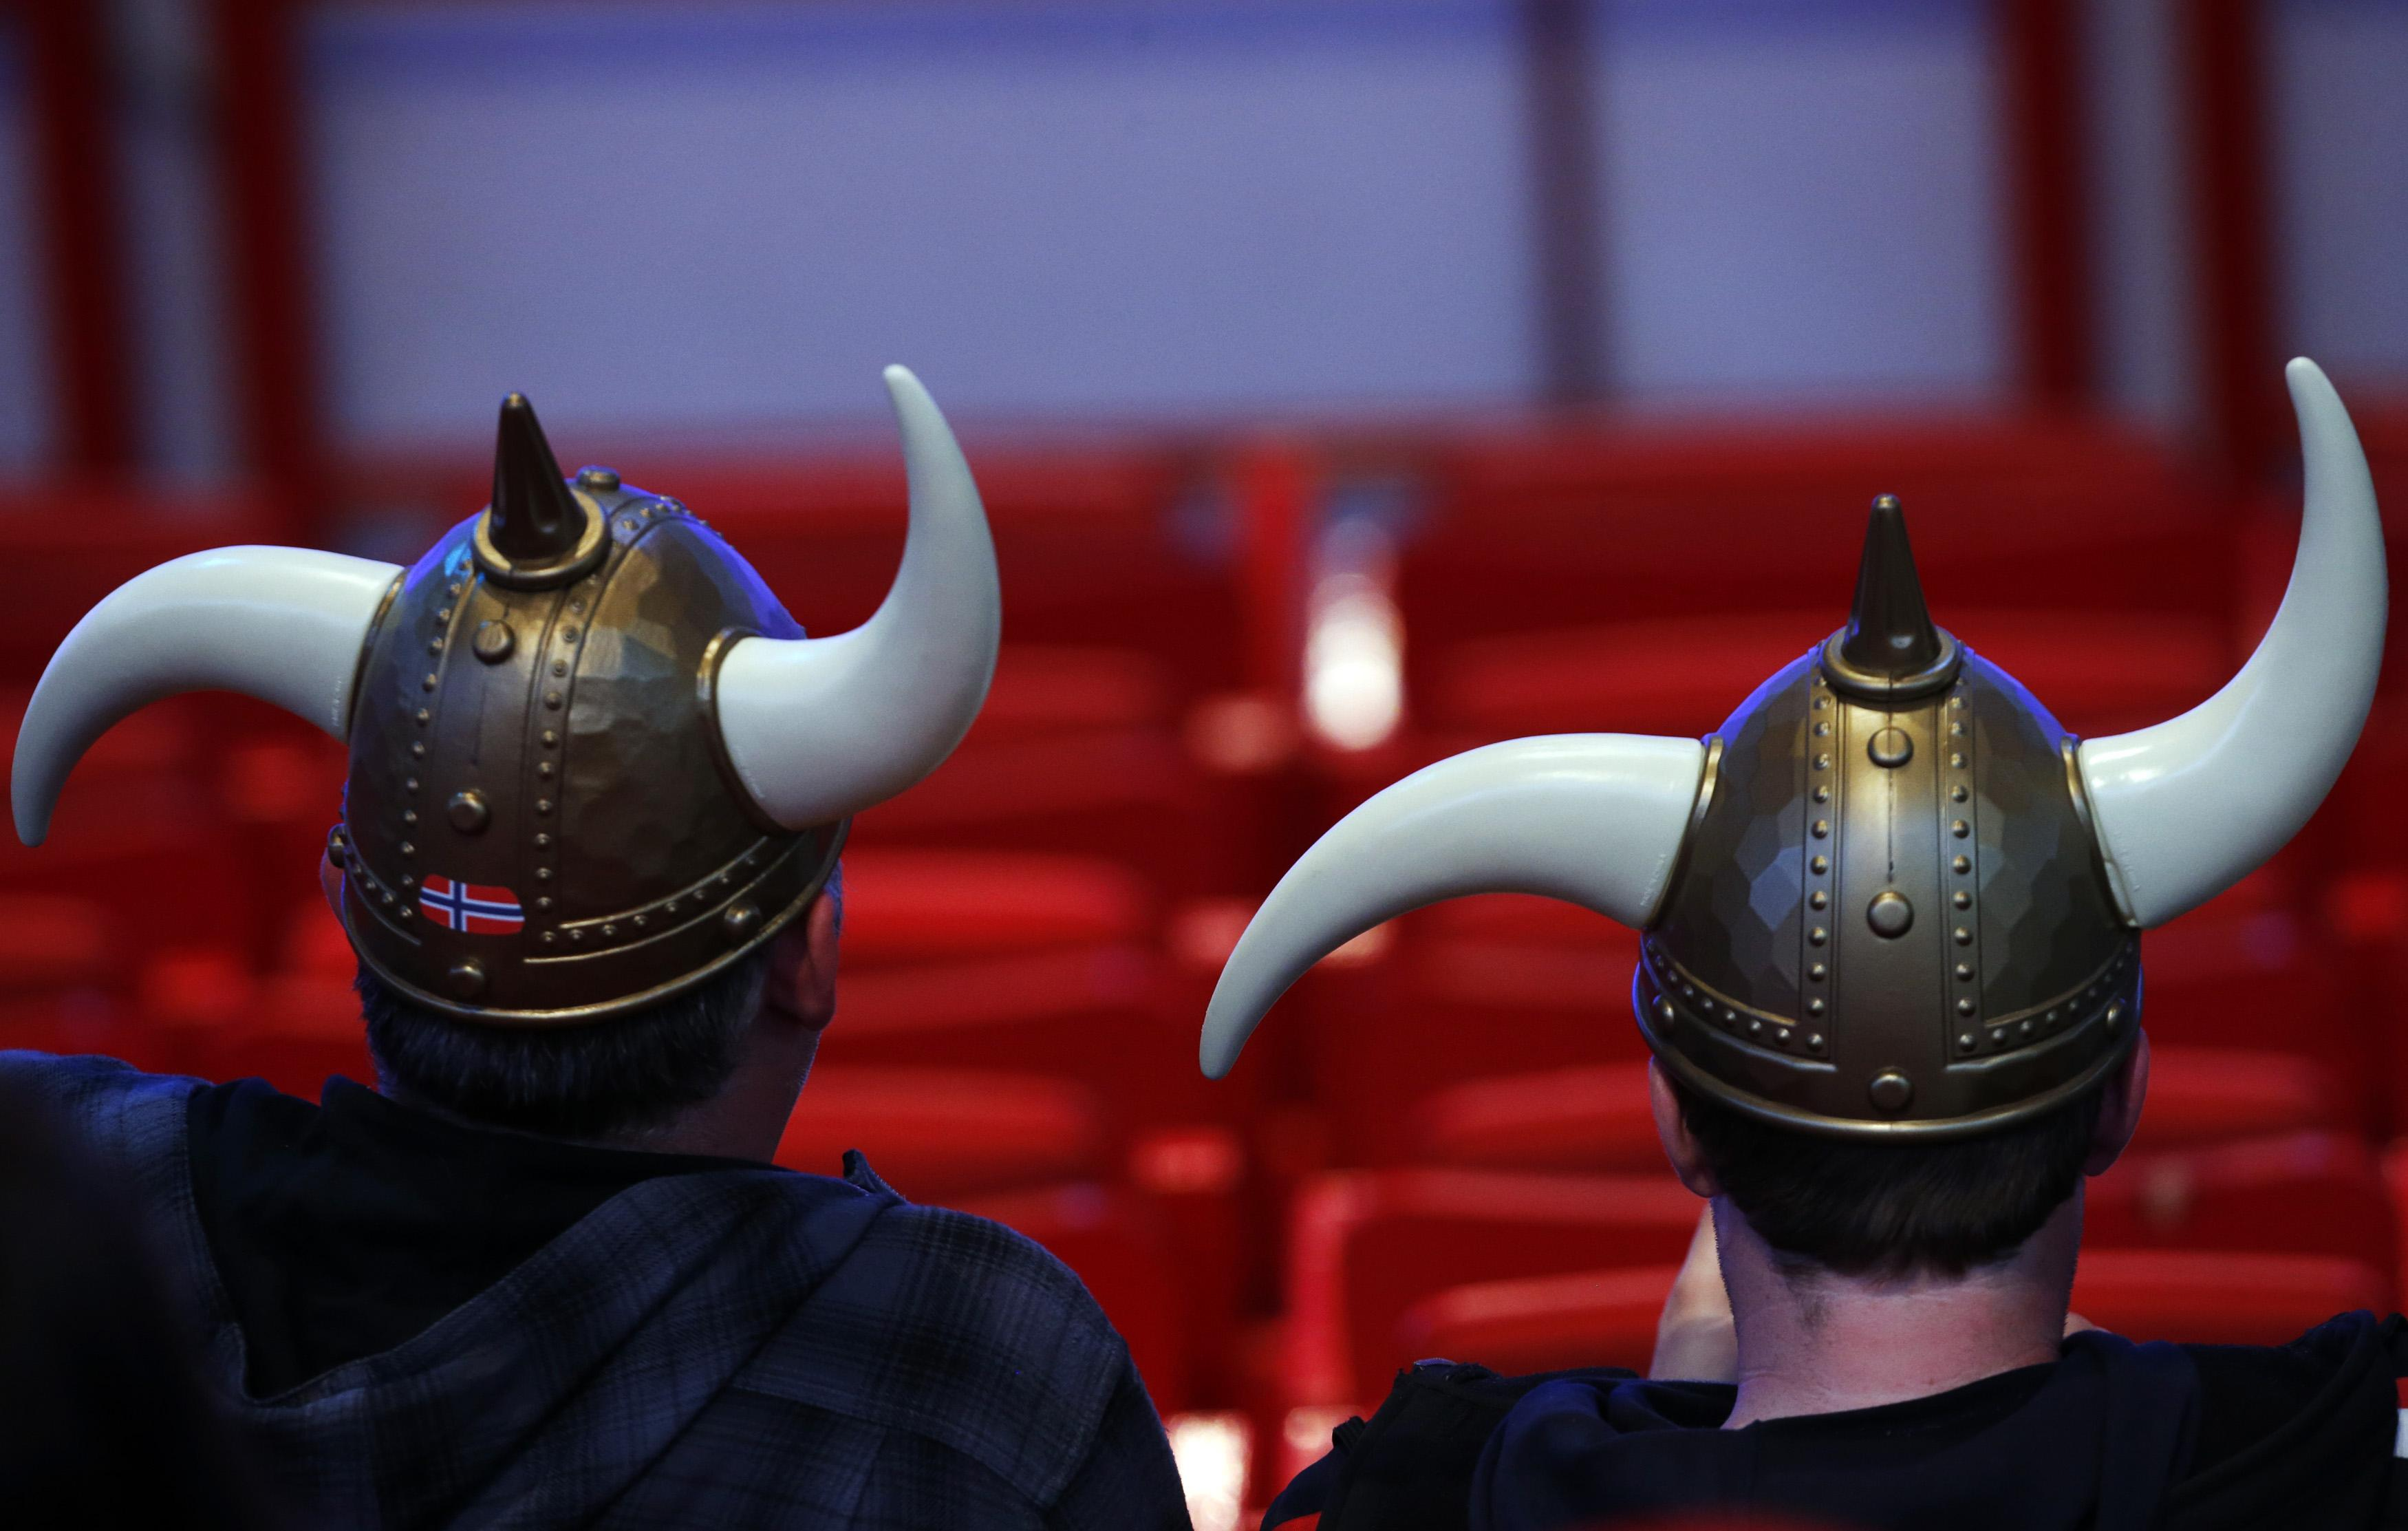 Viking Horns